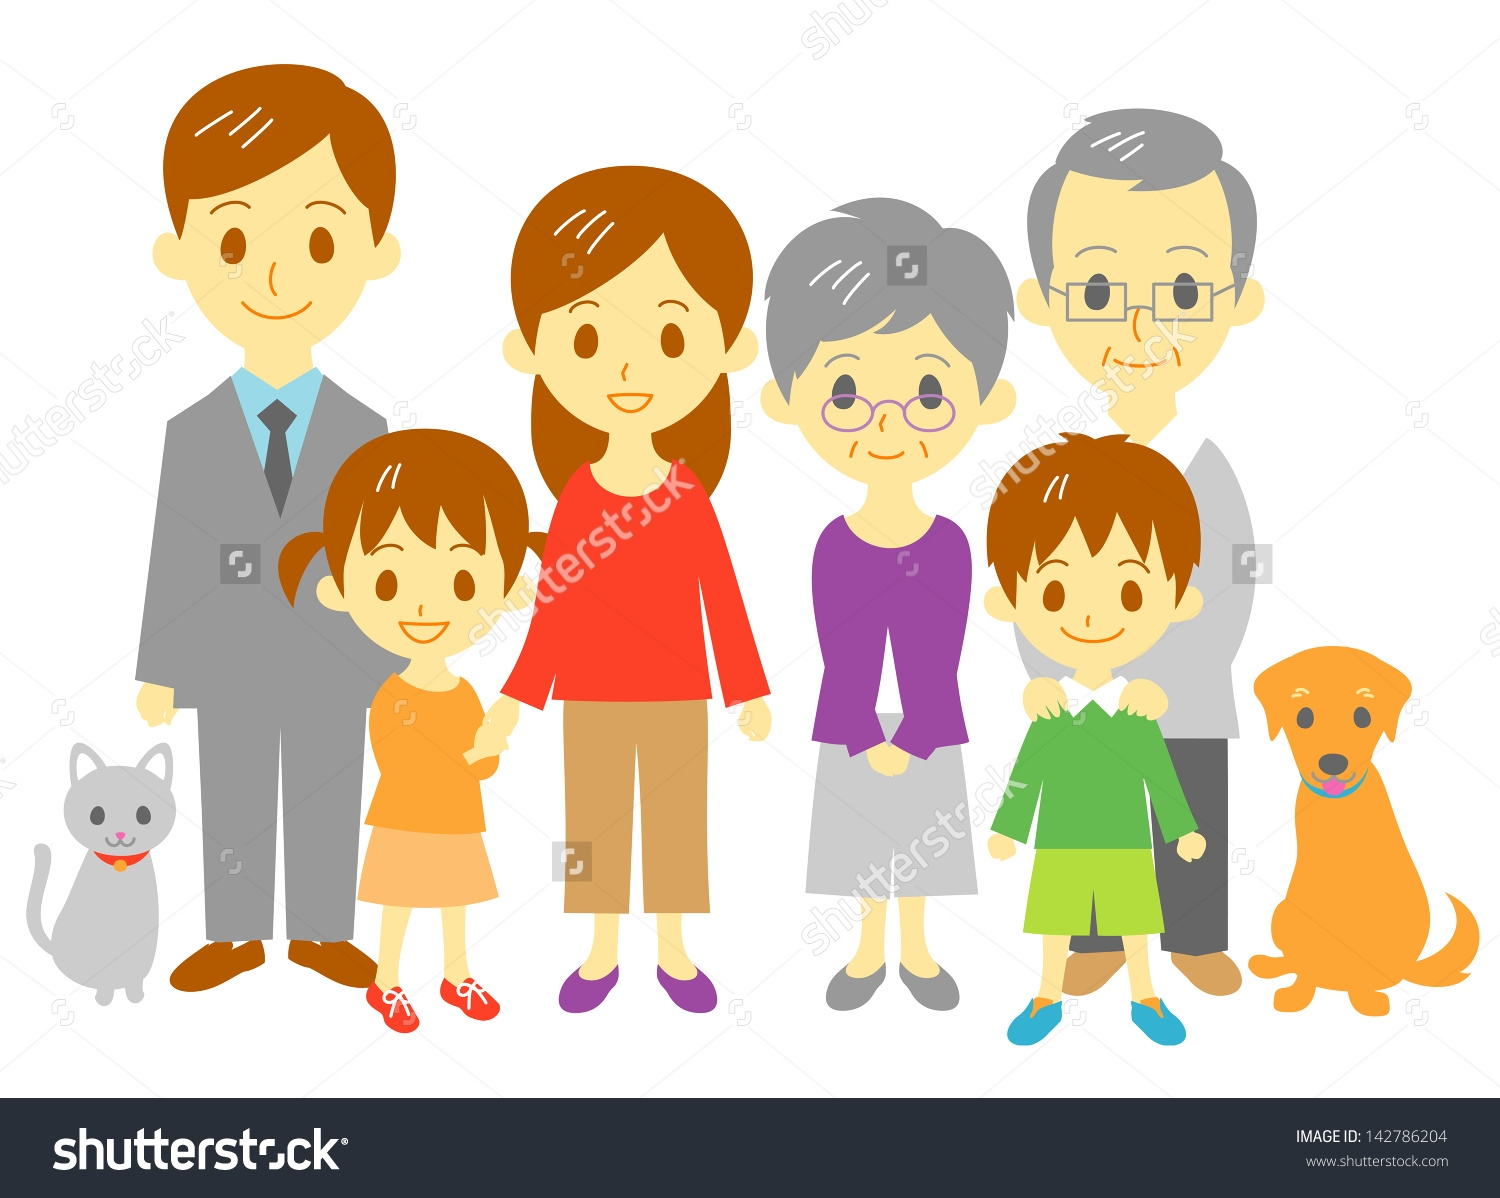 Family with 2 daughters clipart graphic royalty free Family clipart 4 people 2 daughters 12 » Clipart Station graphic royalty free